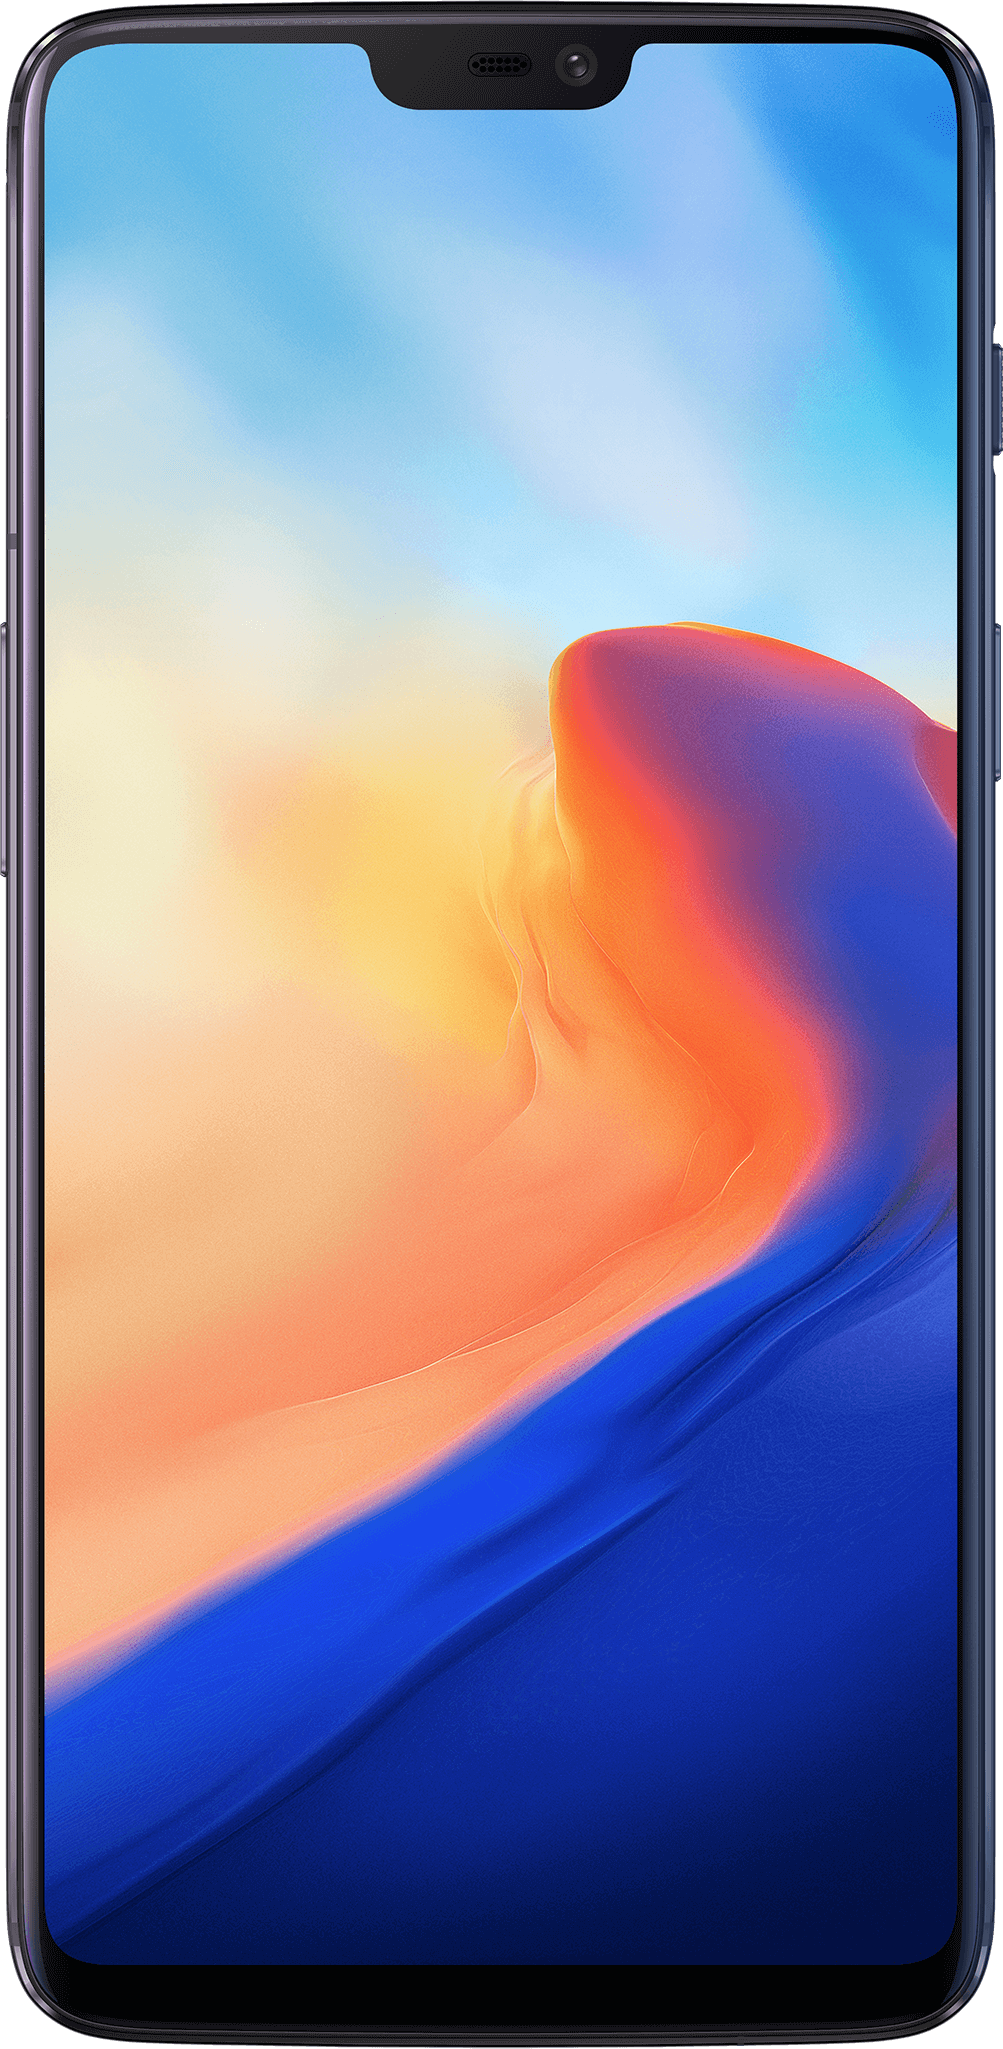 OnePlus 6 A6003 Dual-SIM (256GB Storage | 8GB RAM) Factory Unlocked 4G Smartphone (Midnight Black) – International Version